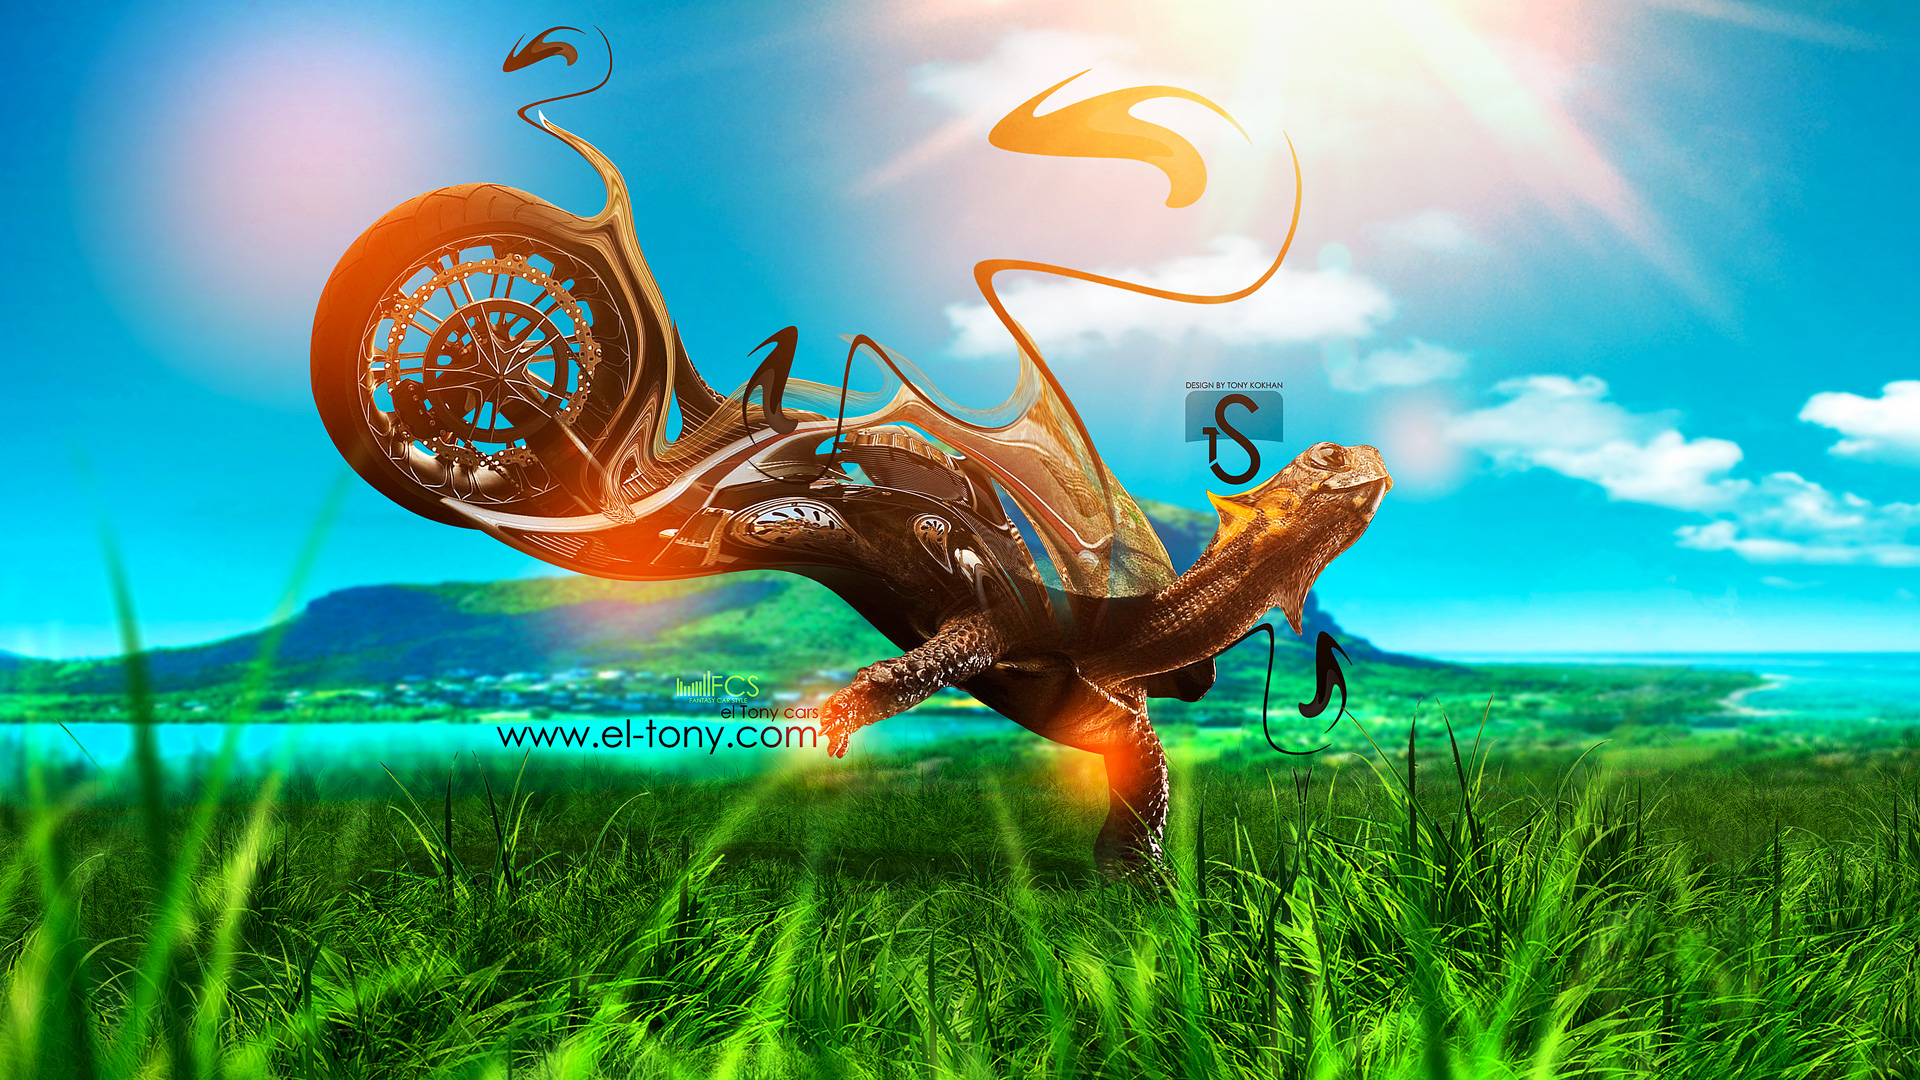 ... Moto Fantasy Turtle Speed Art 2013 Nature Orange  ...